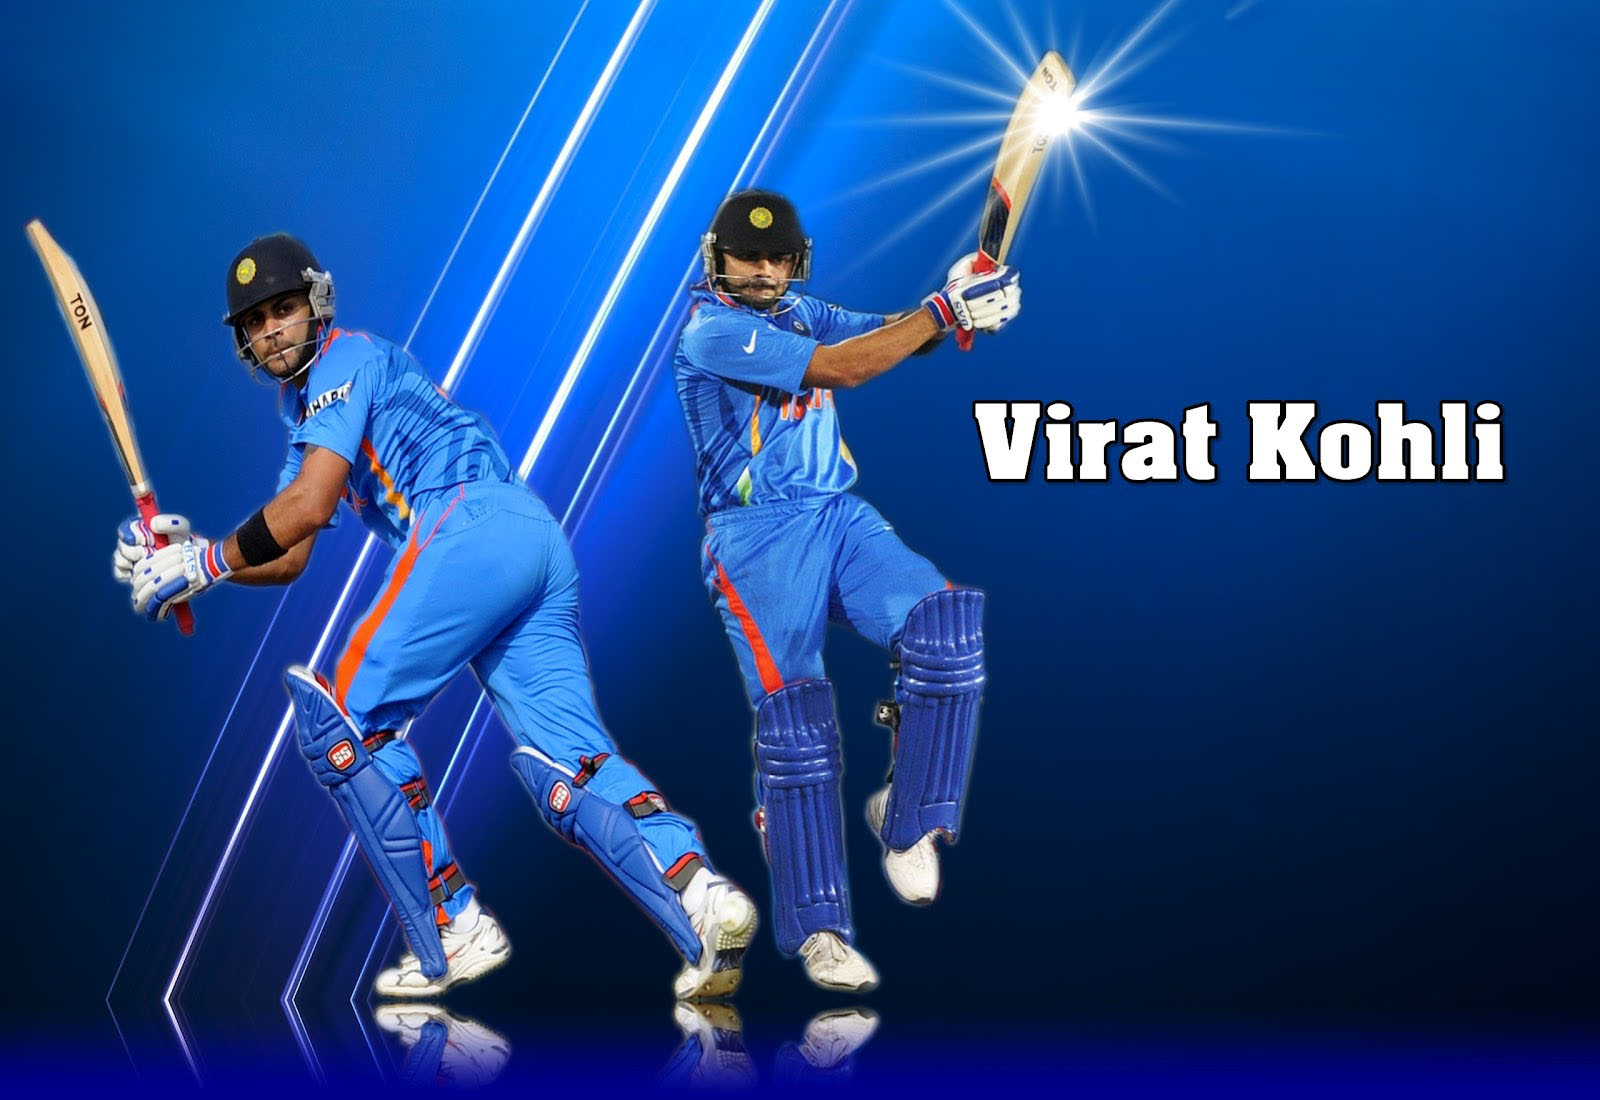 5 Batting Virat Kohli And Ms Dhoni Hd Full Wallpaper 494 Virat